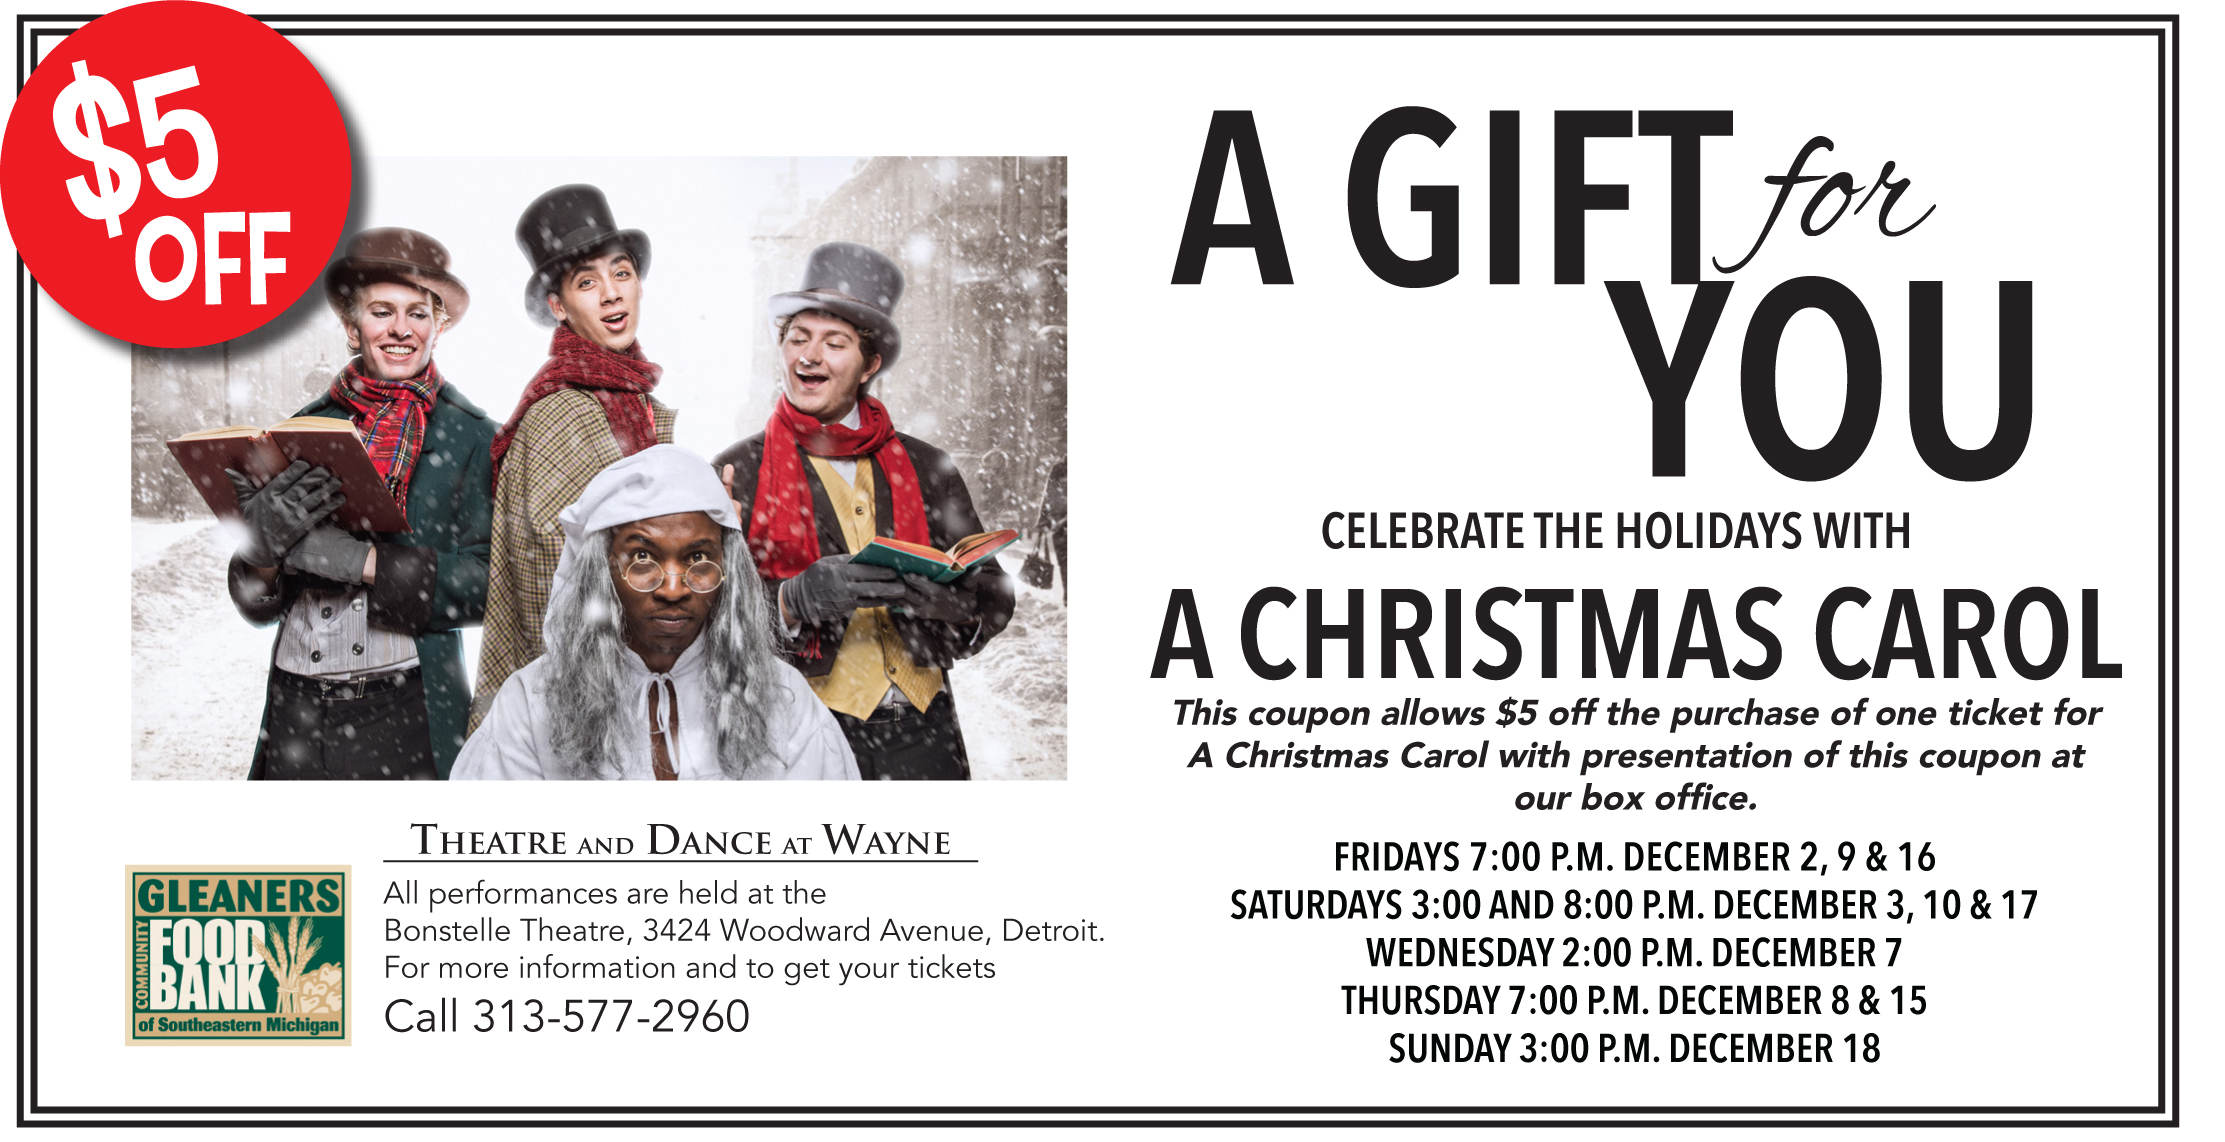 Christmas Carol coupon